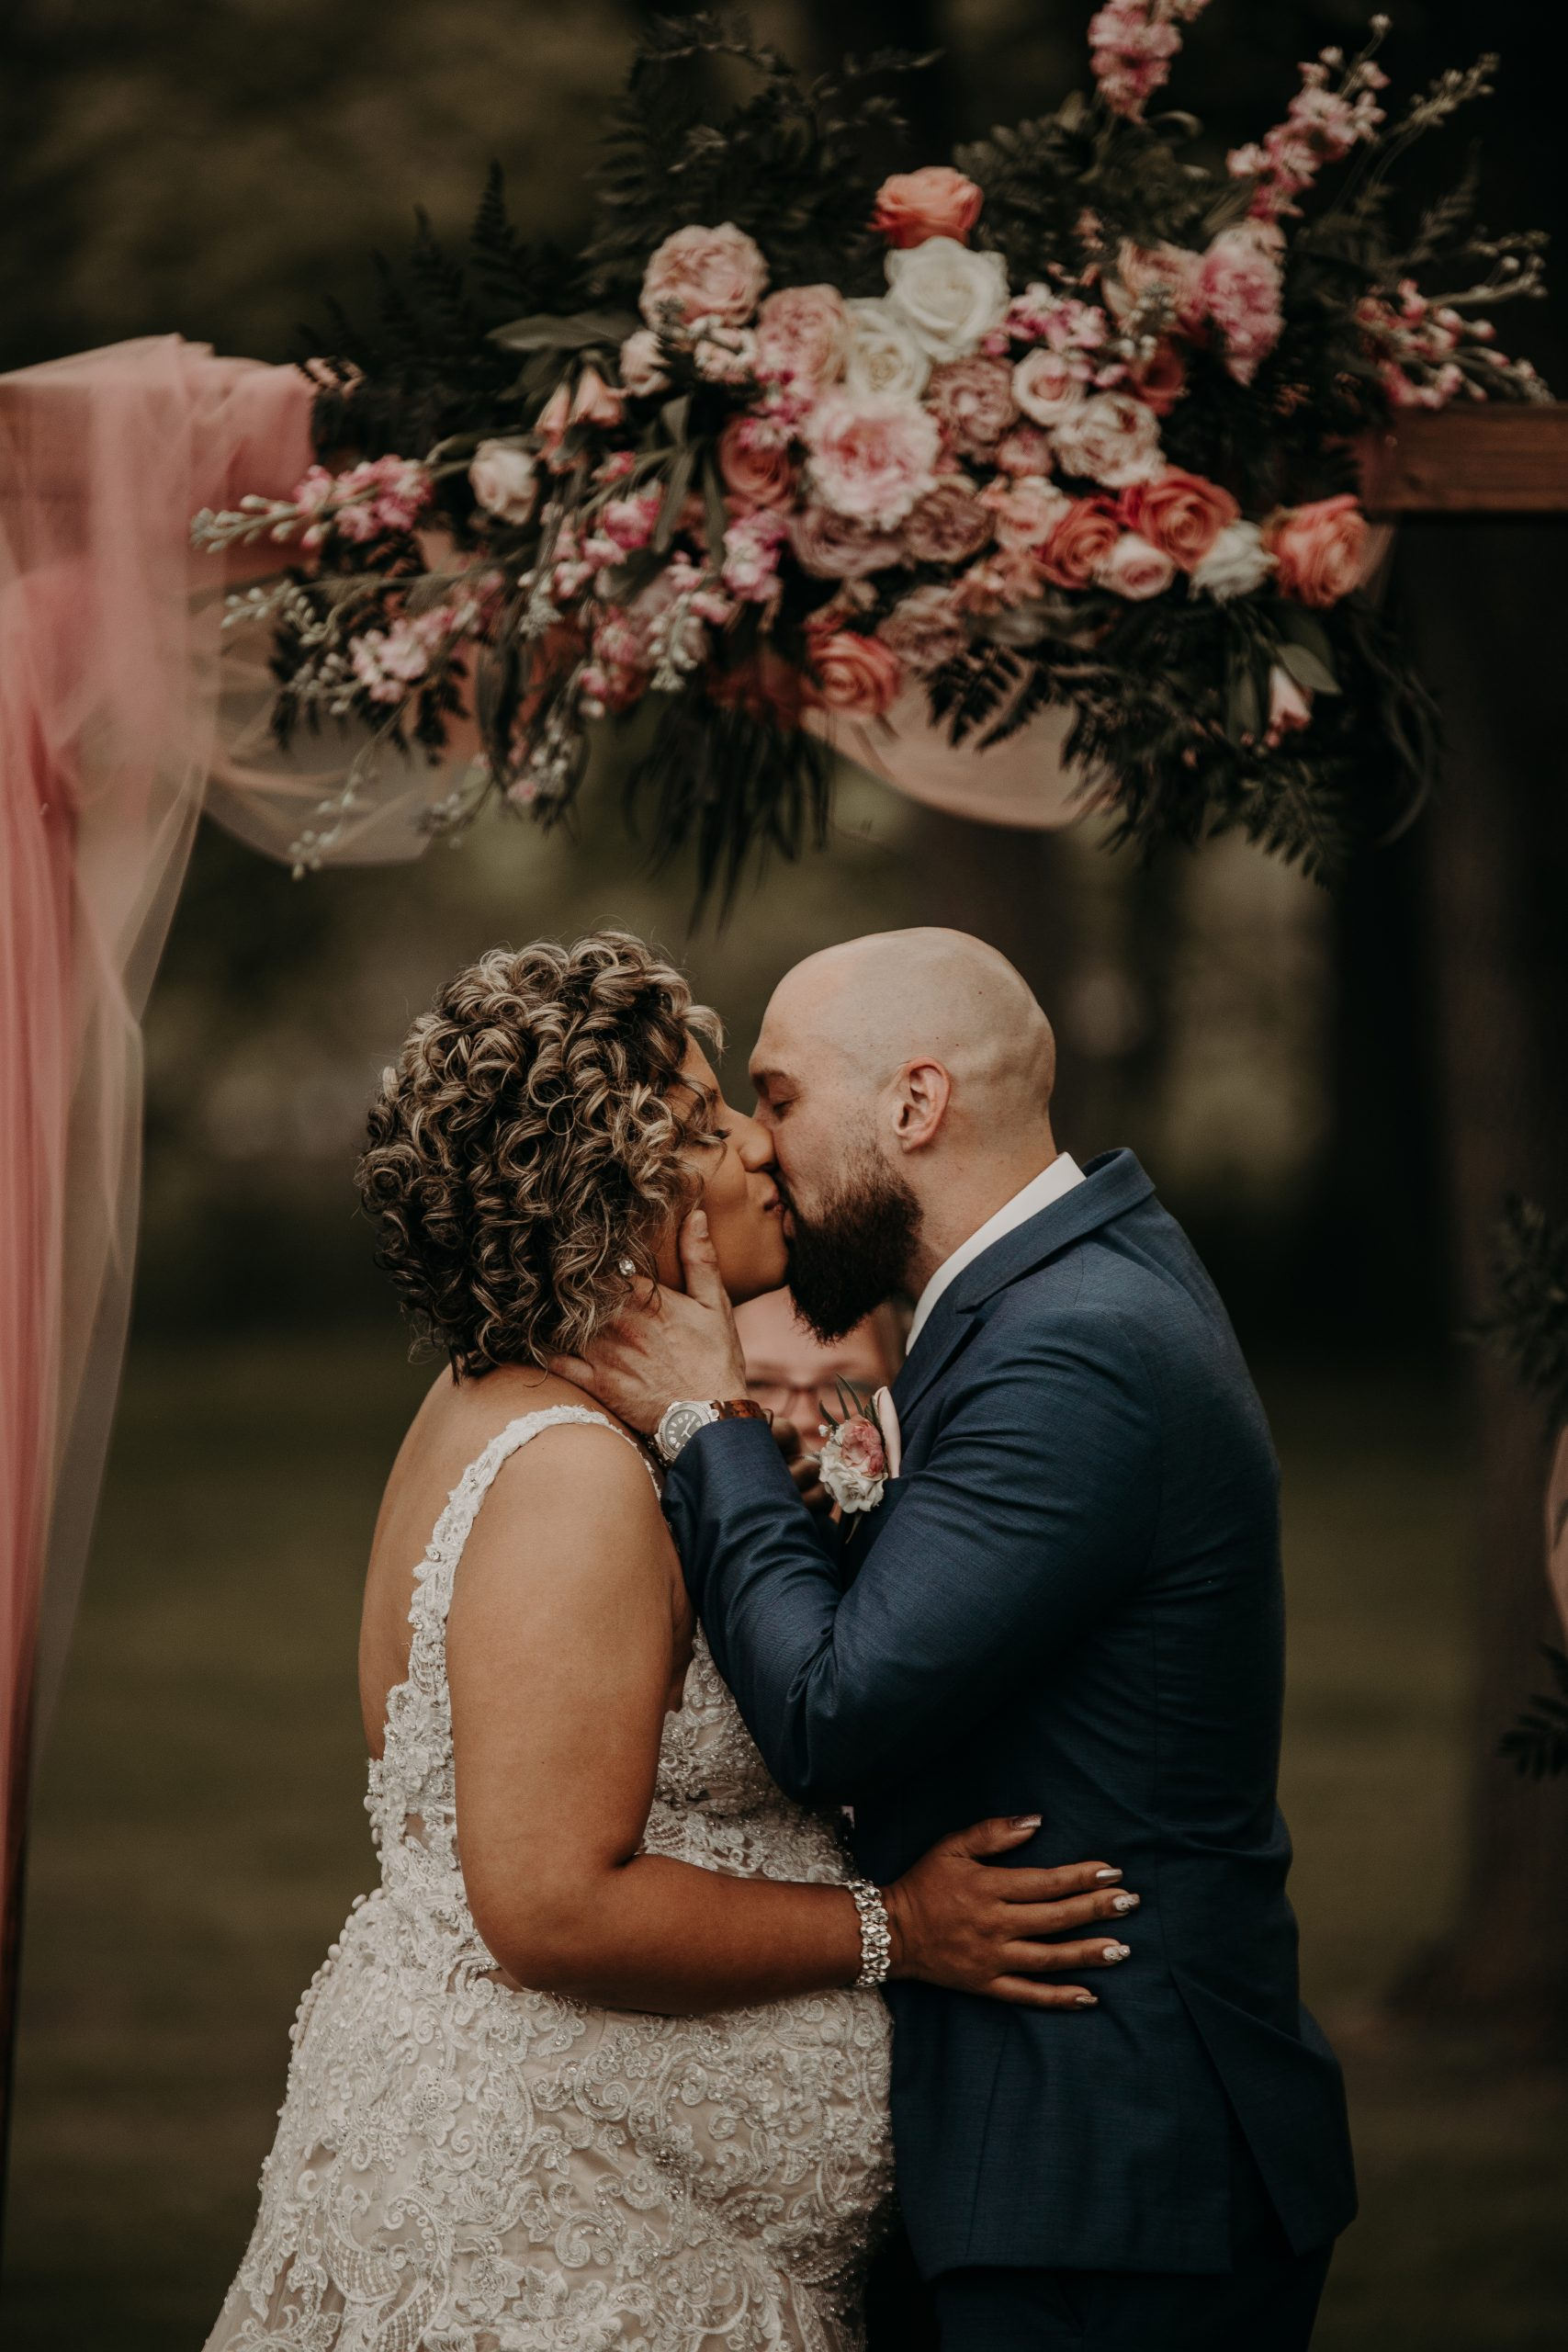 Seal it with a kiss. The two are finally married. Christine and Richard wed on the Chestnut Hill Villa grounds on May of 2019. This organic ethereal styled wedding was captured by Garnet Dahlia Photography and featured on Dream Weddings.